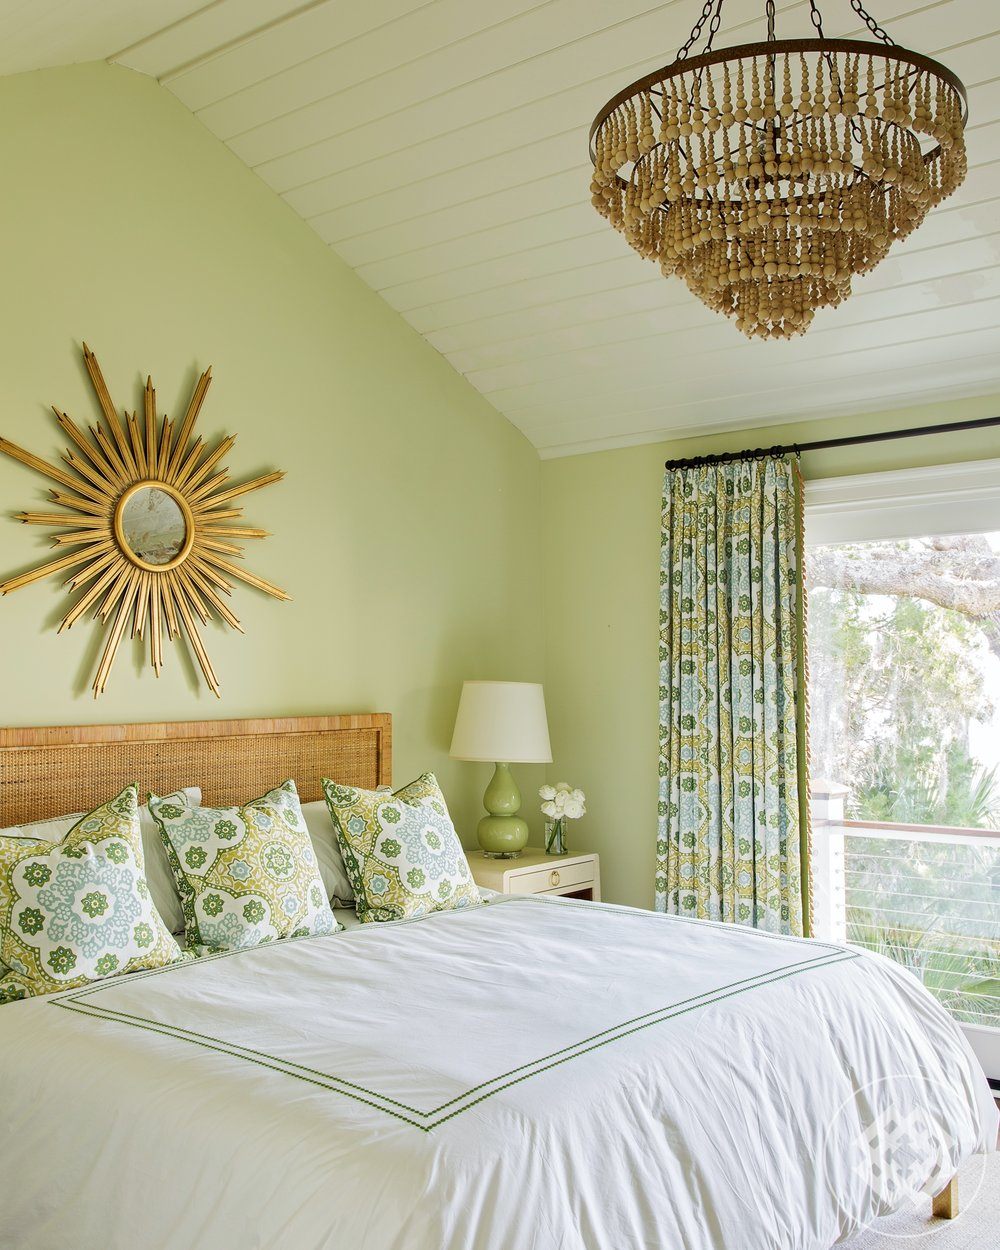 hss-master-bedroom-wood-beaded-chandelier.jpg